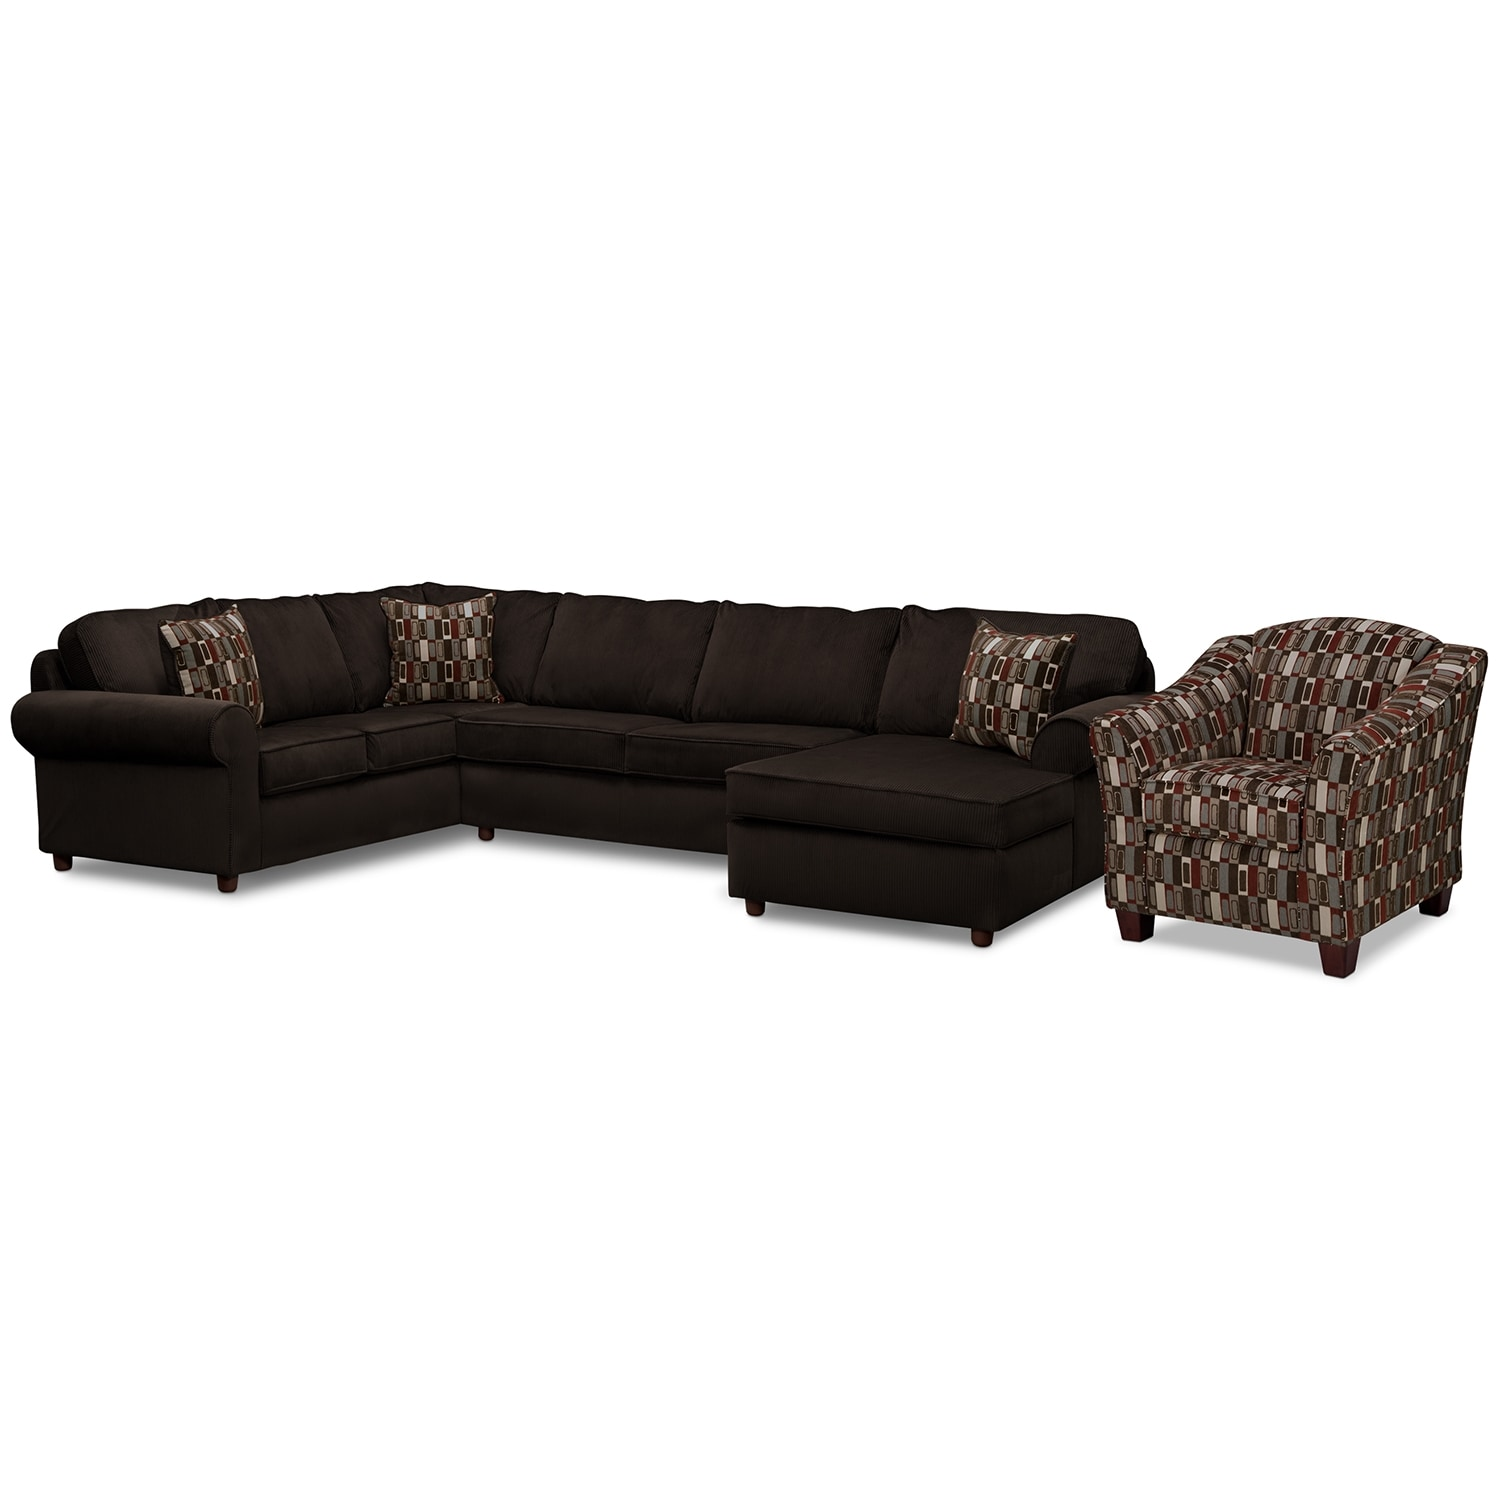 Monarch 3 Pc. Sectional and Accent Chair